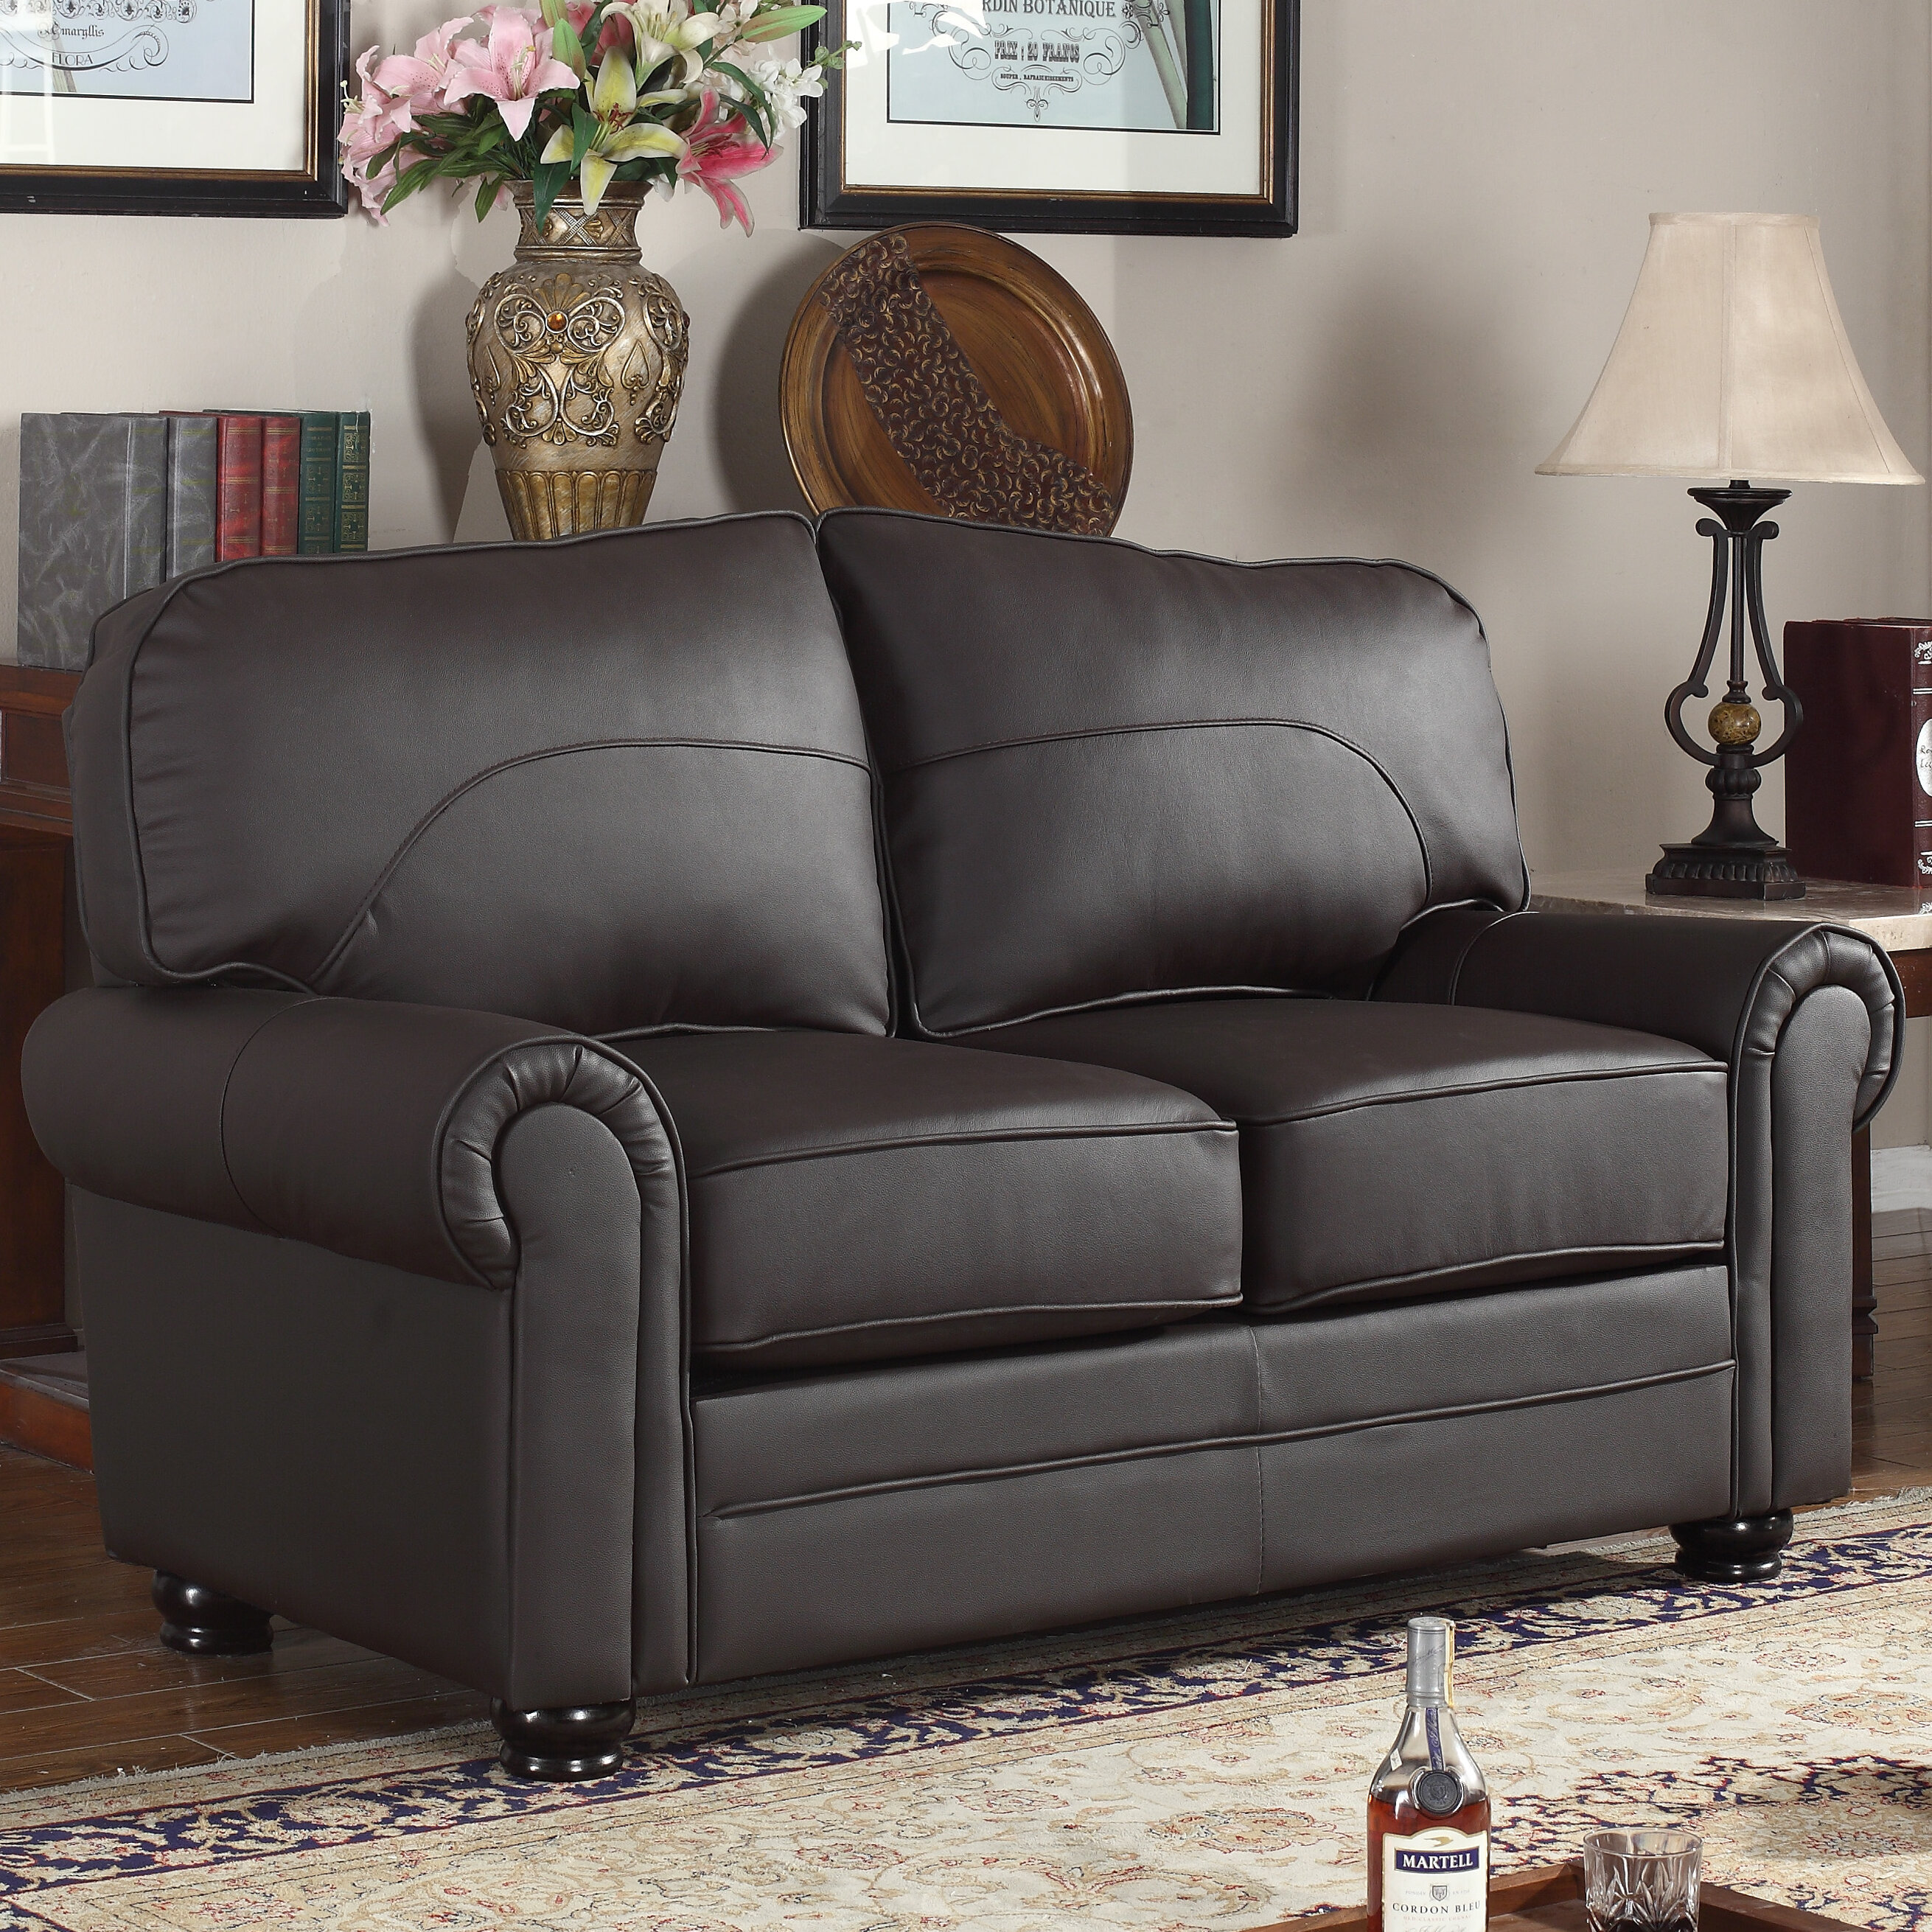 Madison home usa upholstered scroll leather loveseat wayfair